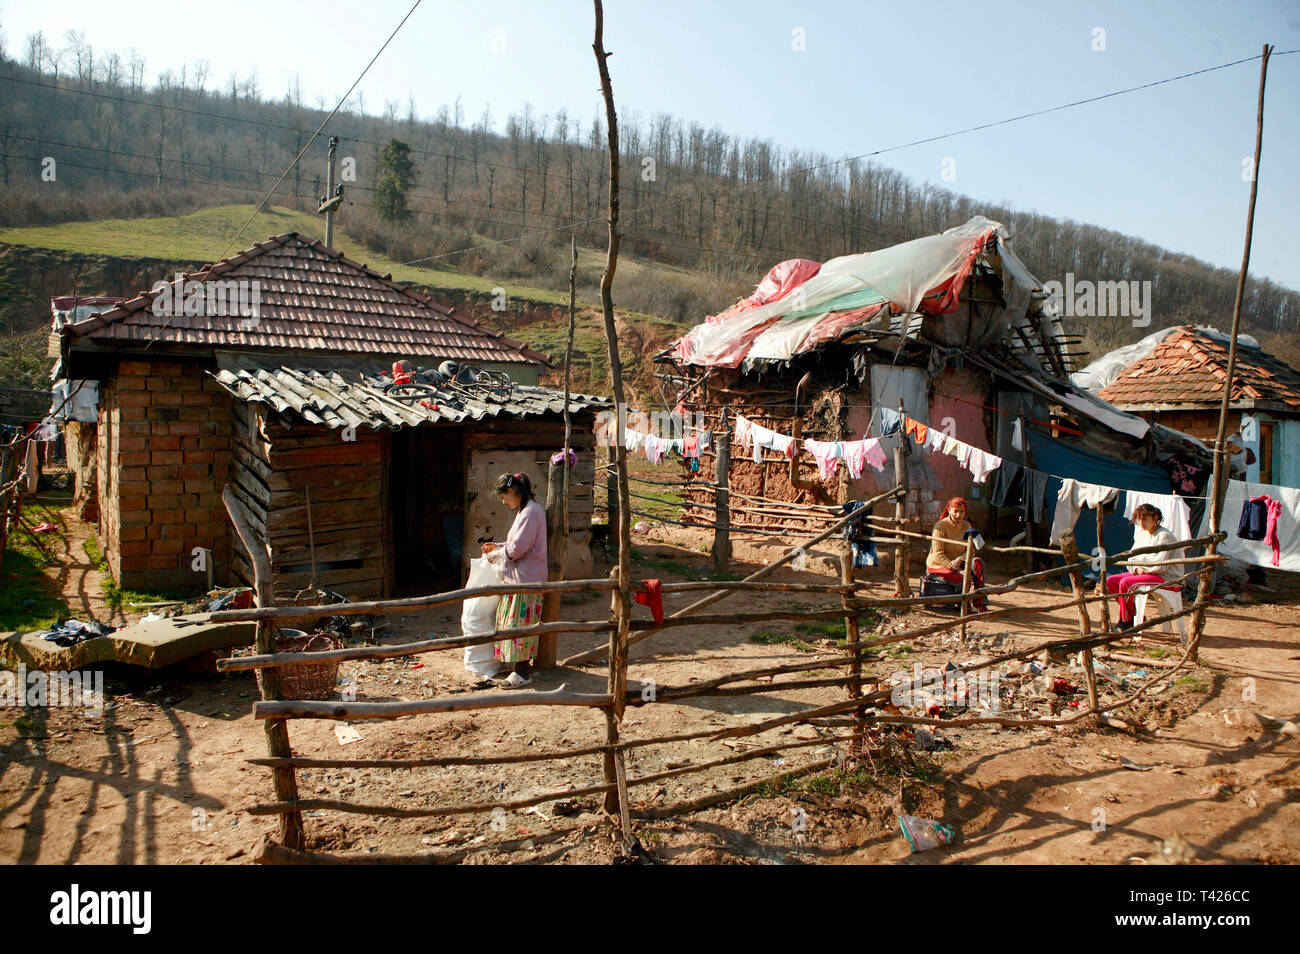 A Roma Gypsy community made up of 700-800 people in Jibou, Romania. 15/03/2007 - Stock Image